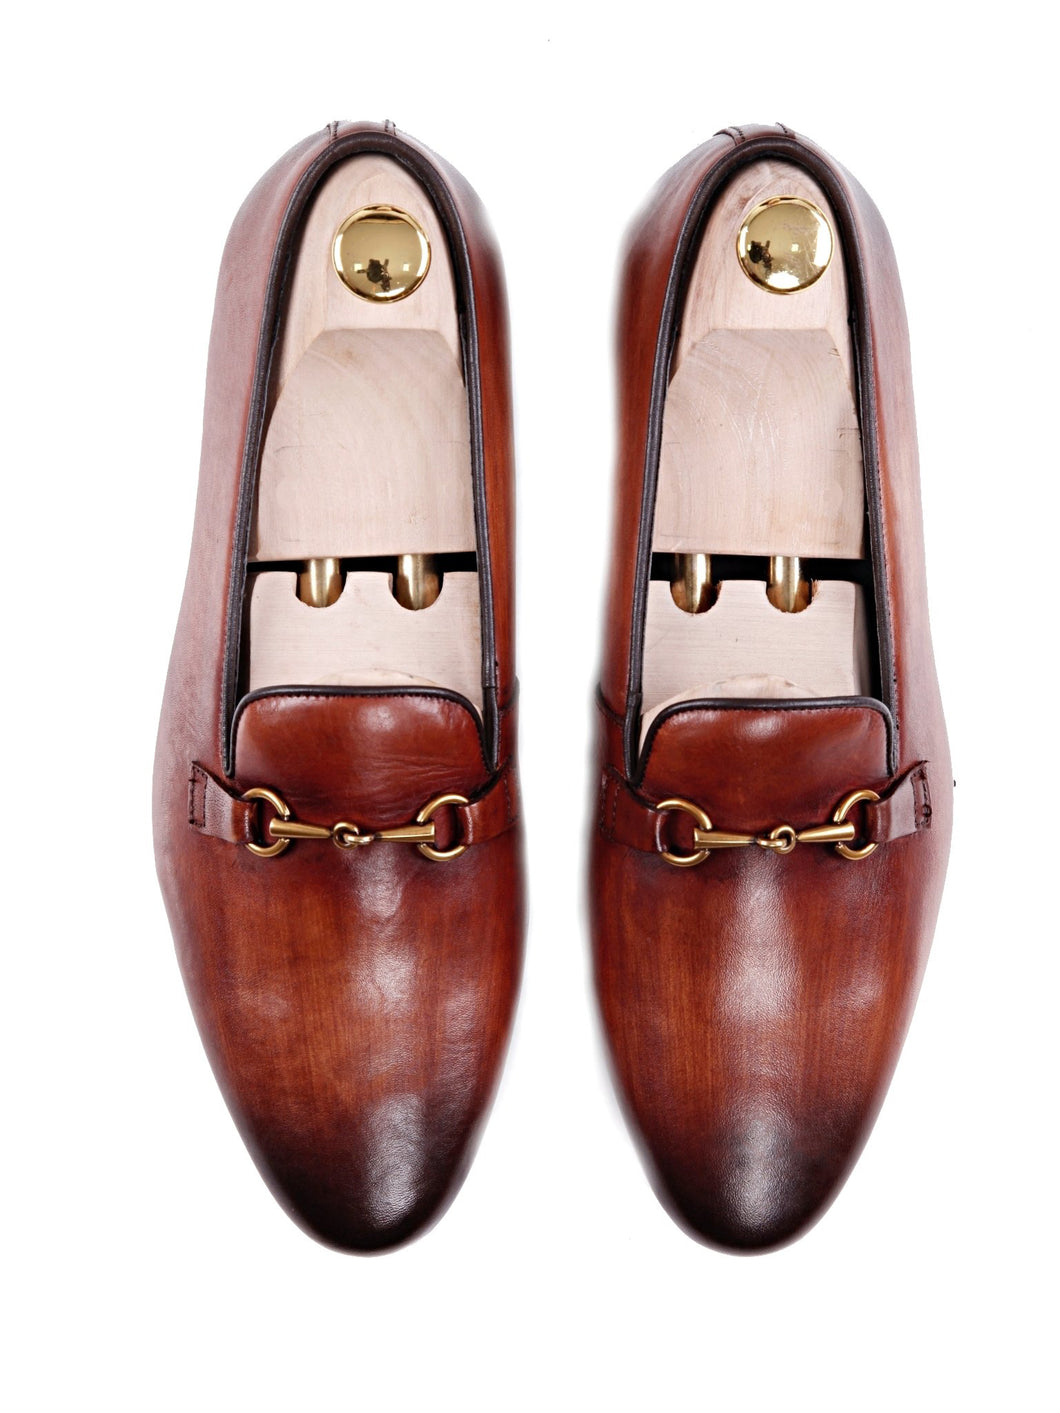 Women Loafer Slipper in Cognac Tan Leather Brass Horsebit